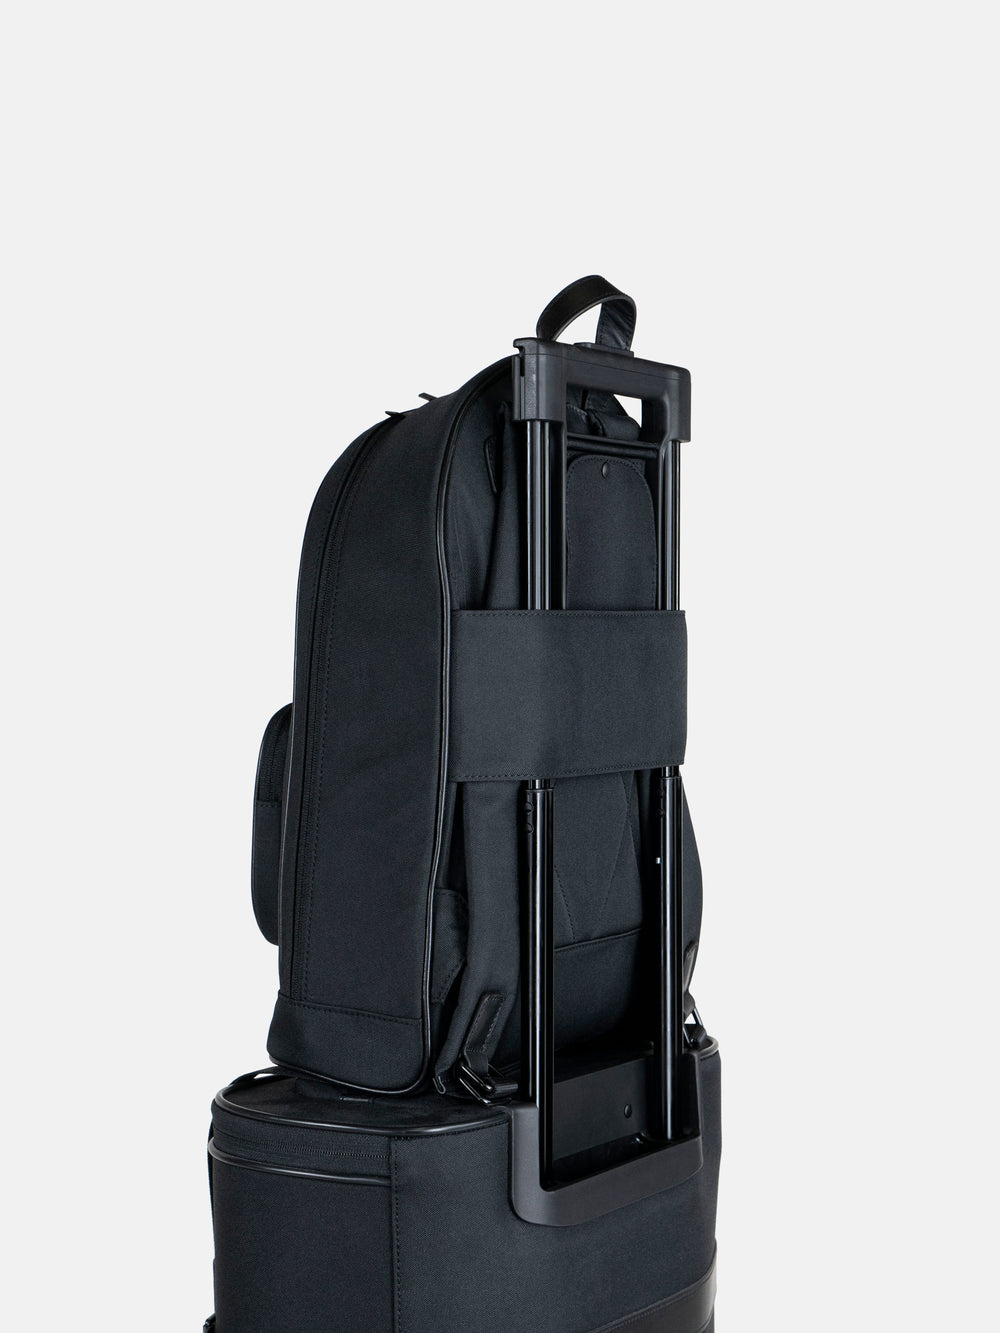 c30 backpack on luggage handle